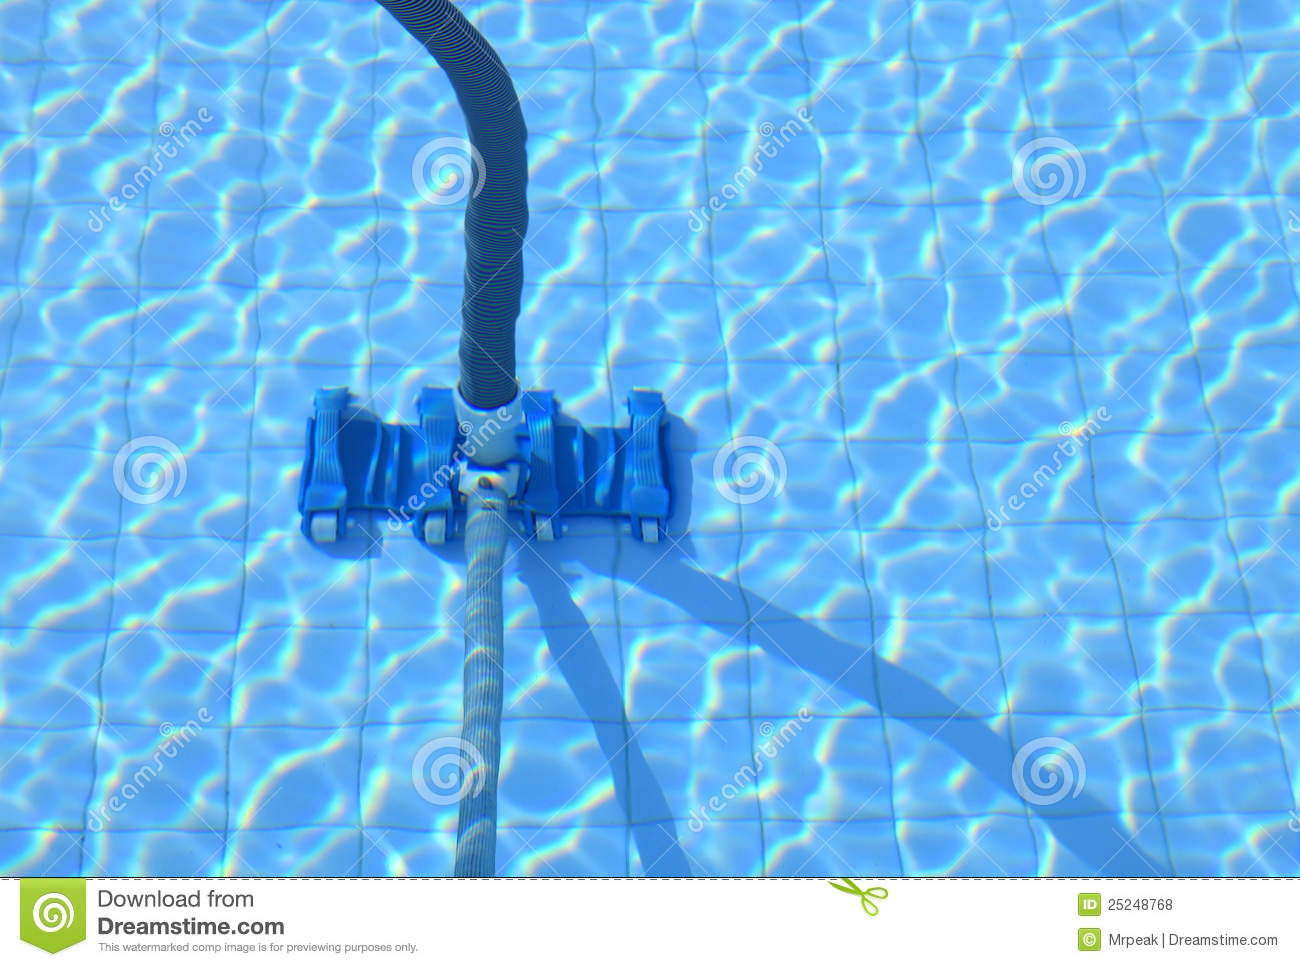 Swimming Pool Cleaning Tool Royalty Free Stock Photos Image 25248768